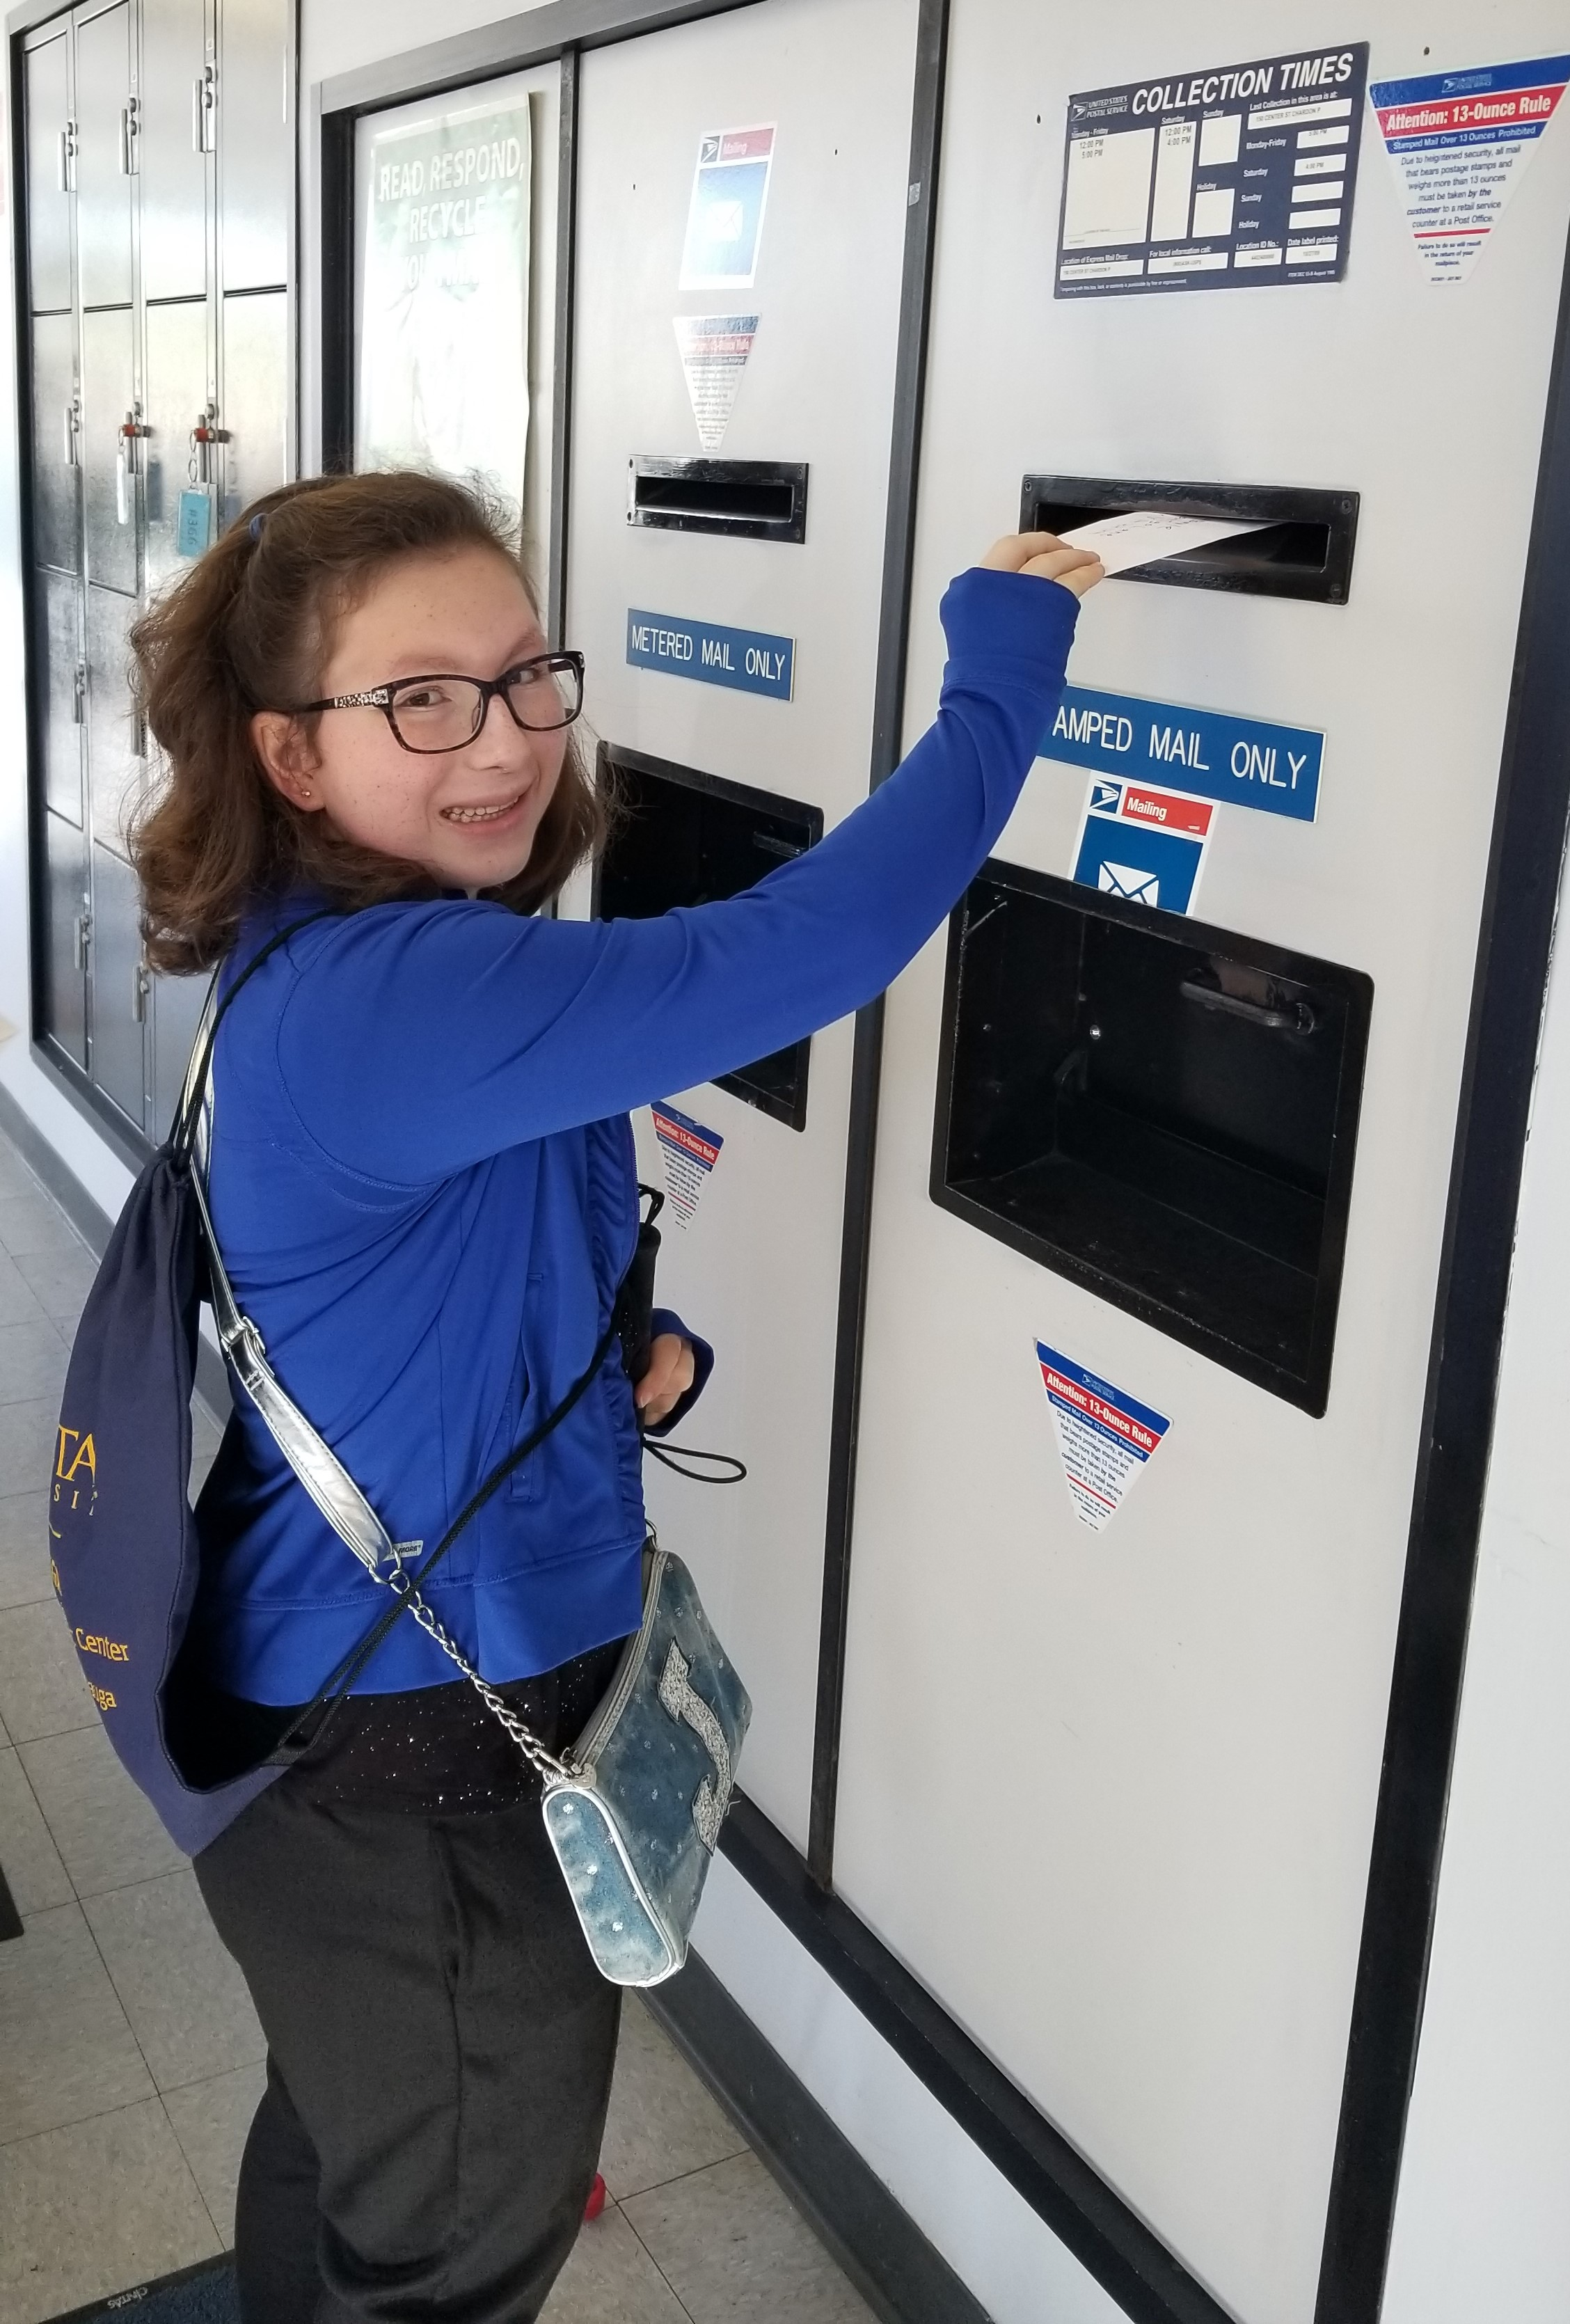 Chardon High School student putting a letter in a mail slot at the Chardon Post Office